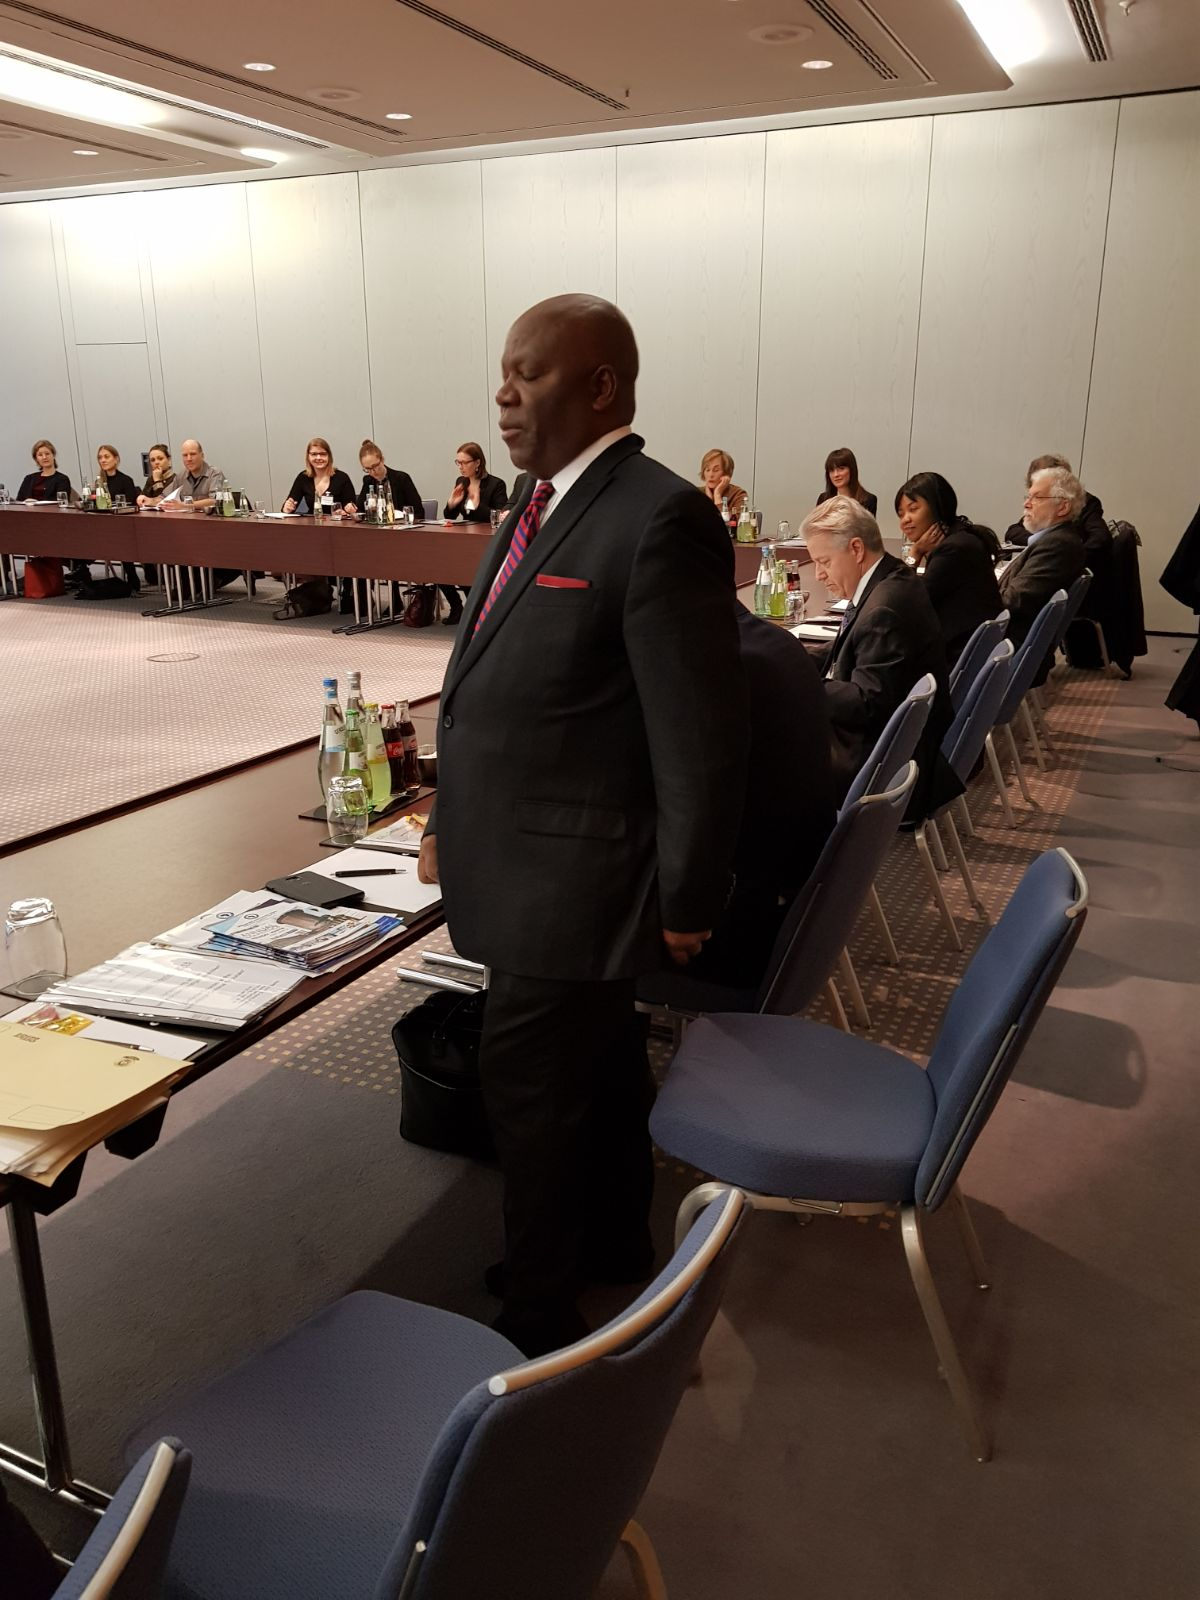 Berlin: African Bar Association President calls for the release of Ambazonian leaders